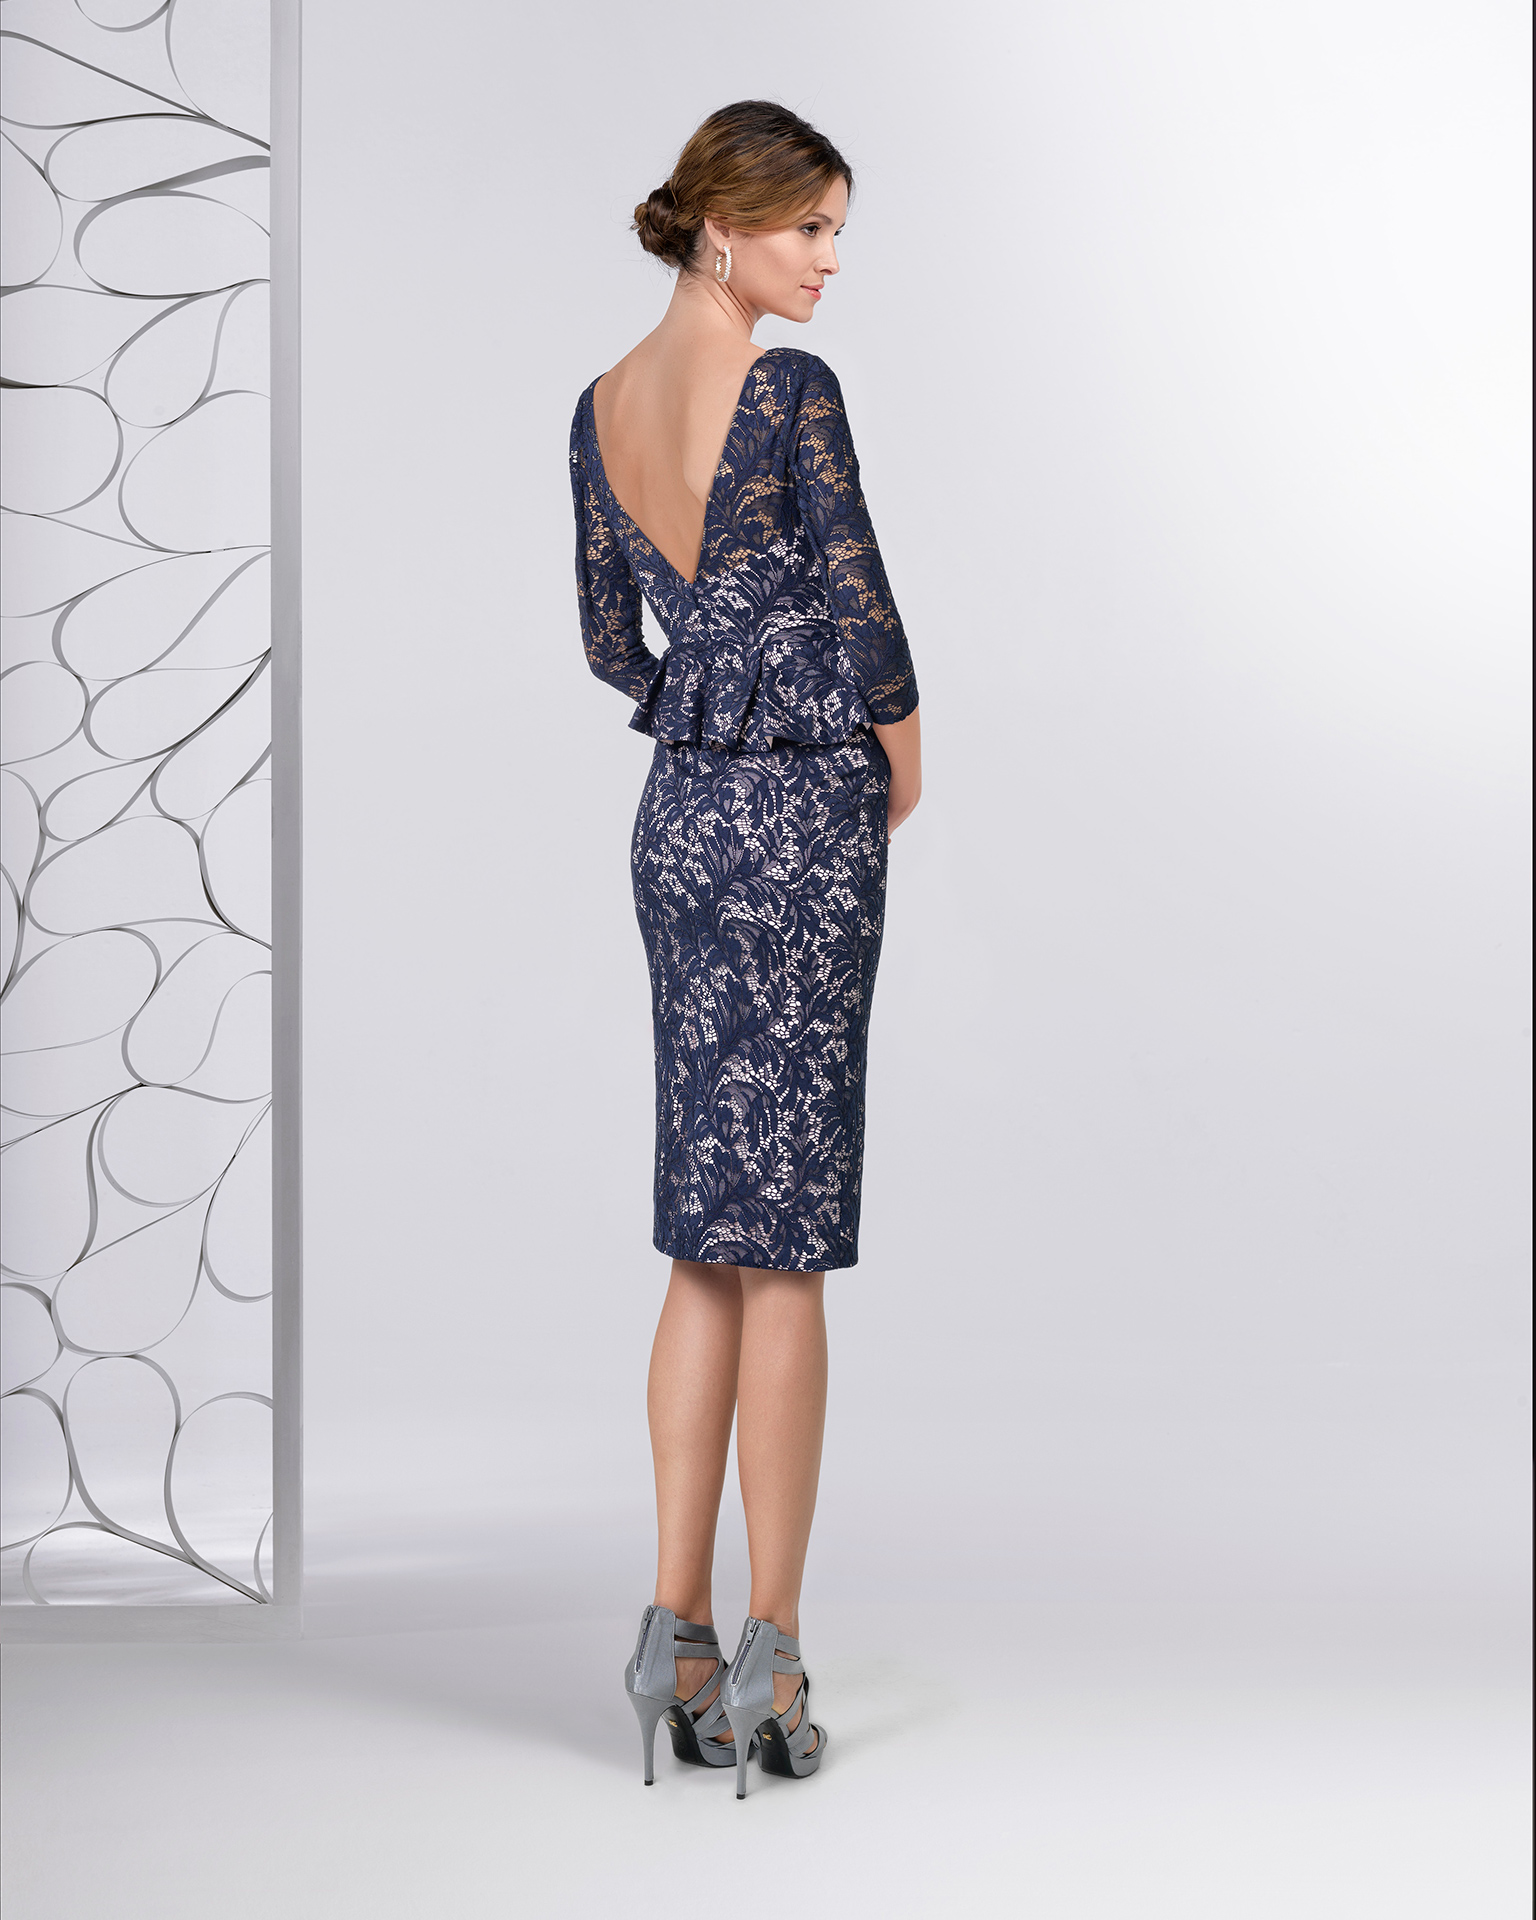 Short lace cocktail dress with peplum and three-quarter sleeves. Available in navy blue/pink. 2018 FIESTA AIRE BARCELONA Collection.